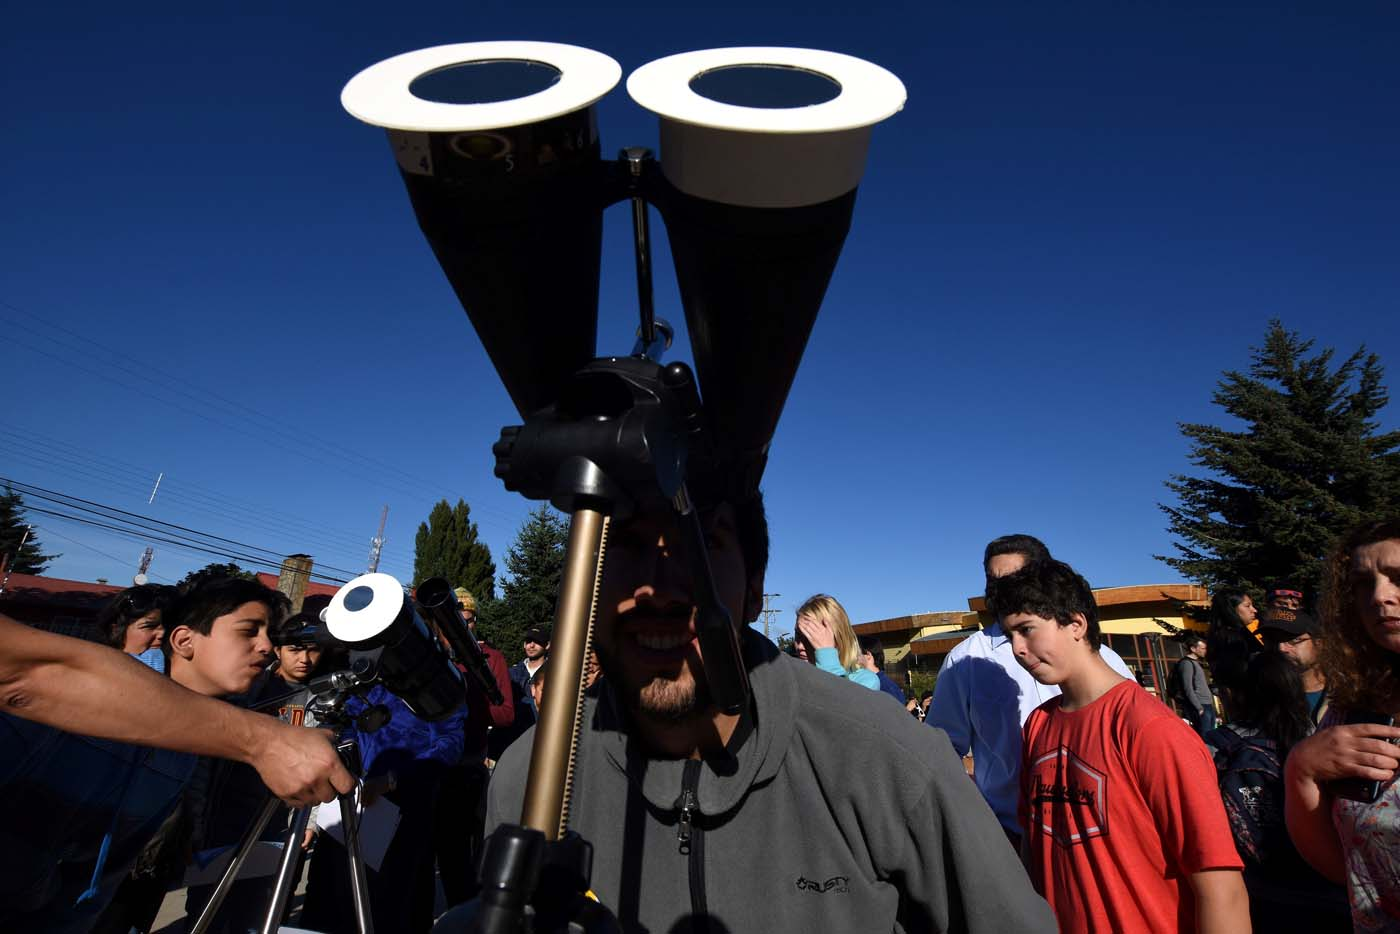 A man observes a solar eclipse in Coyhaique, Chile February 26, 2017. REUTERS/Stringer EDITORIAL USE ONLY. NO RESALES. NO ARCHIVE